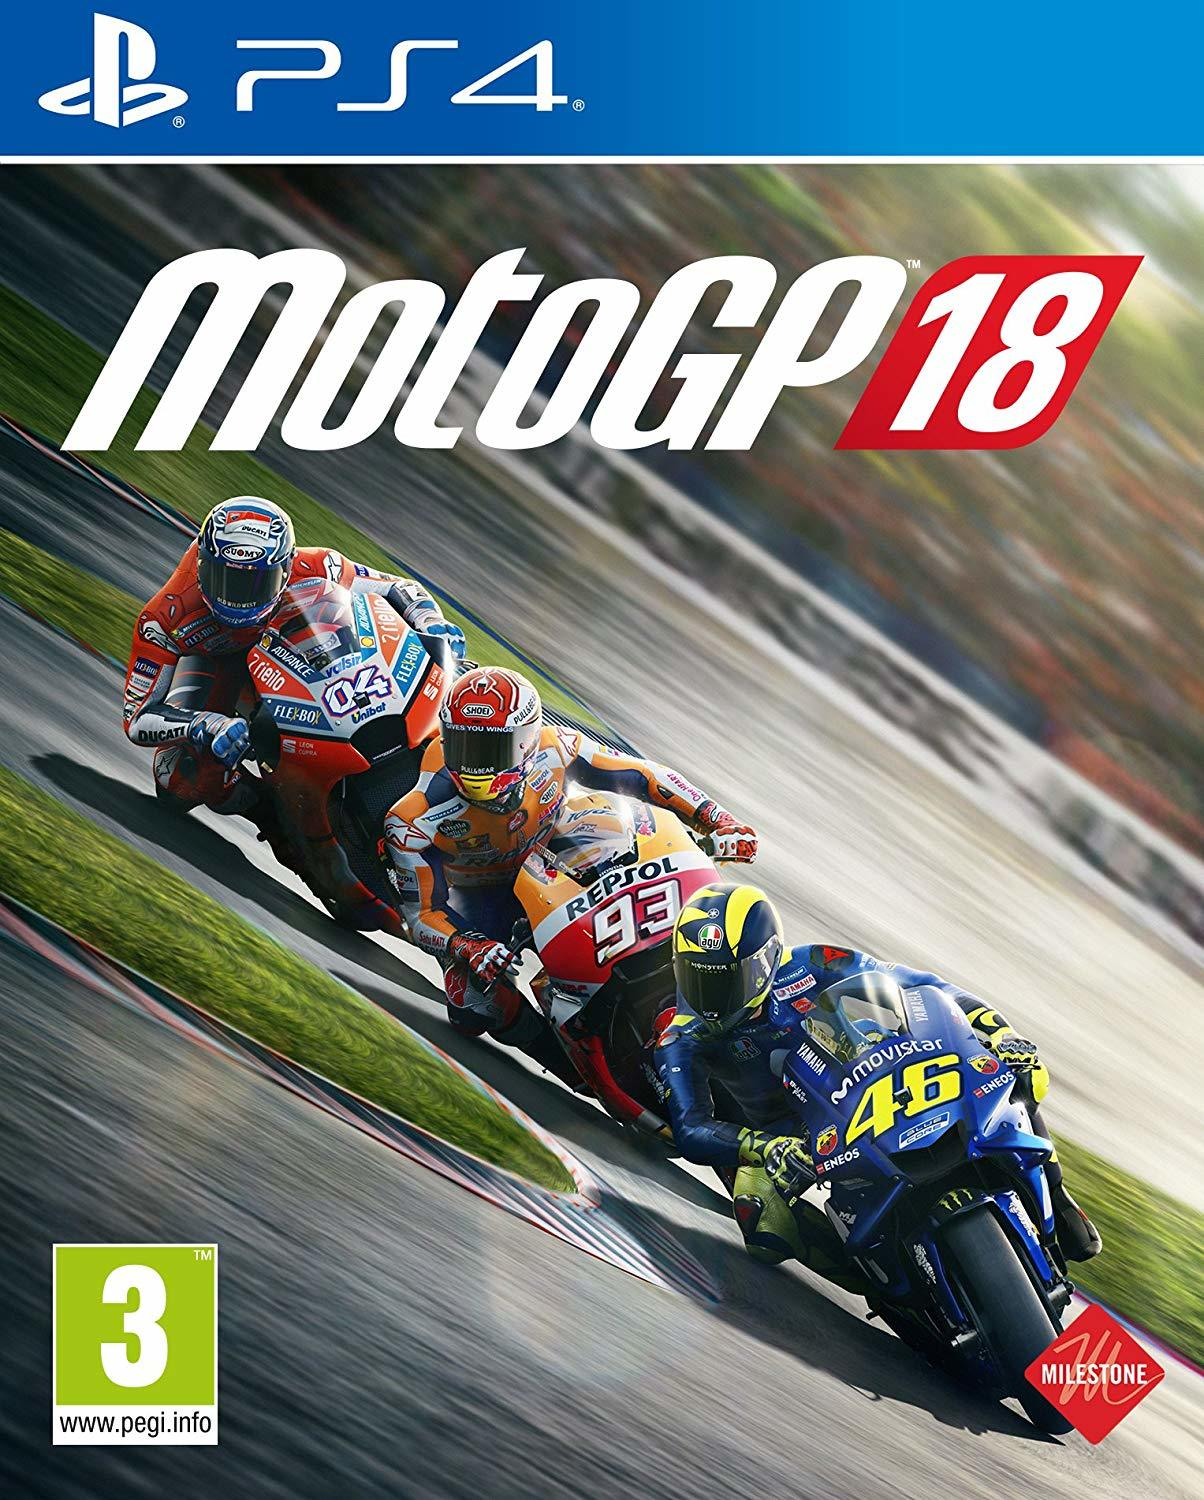 Moto GP 18 for PS4 image